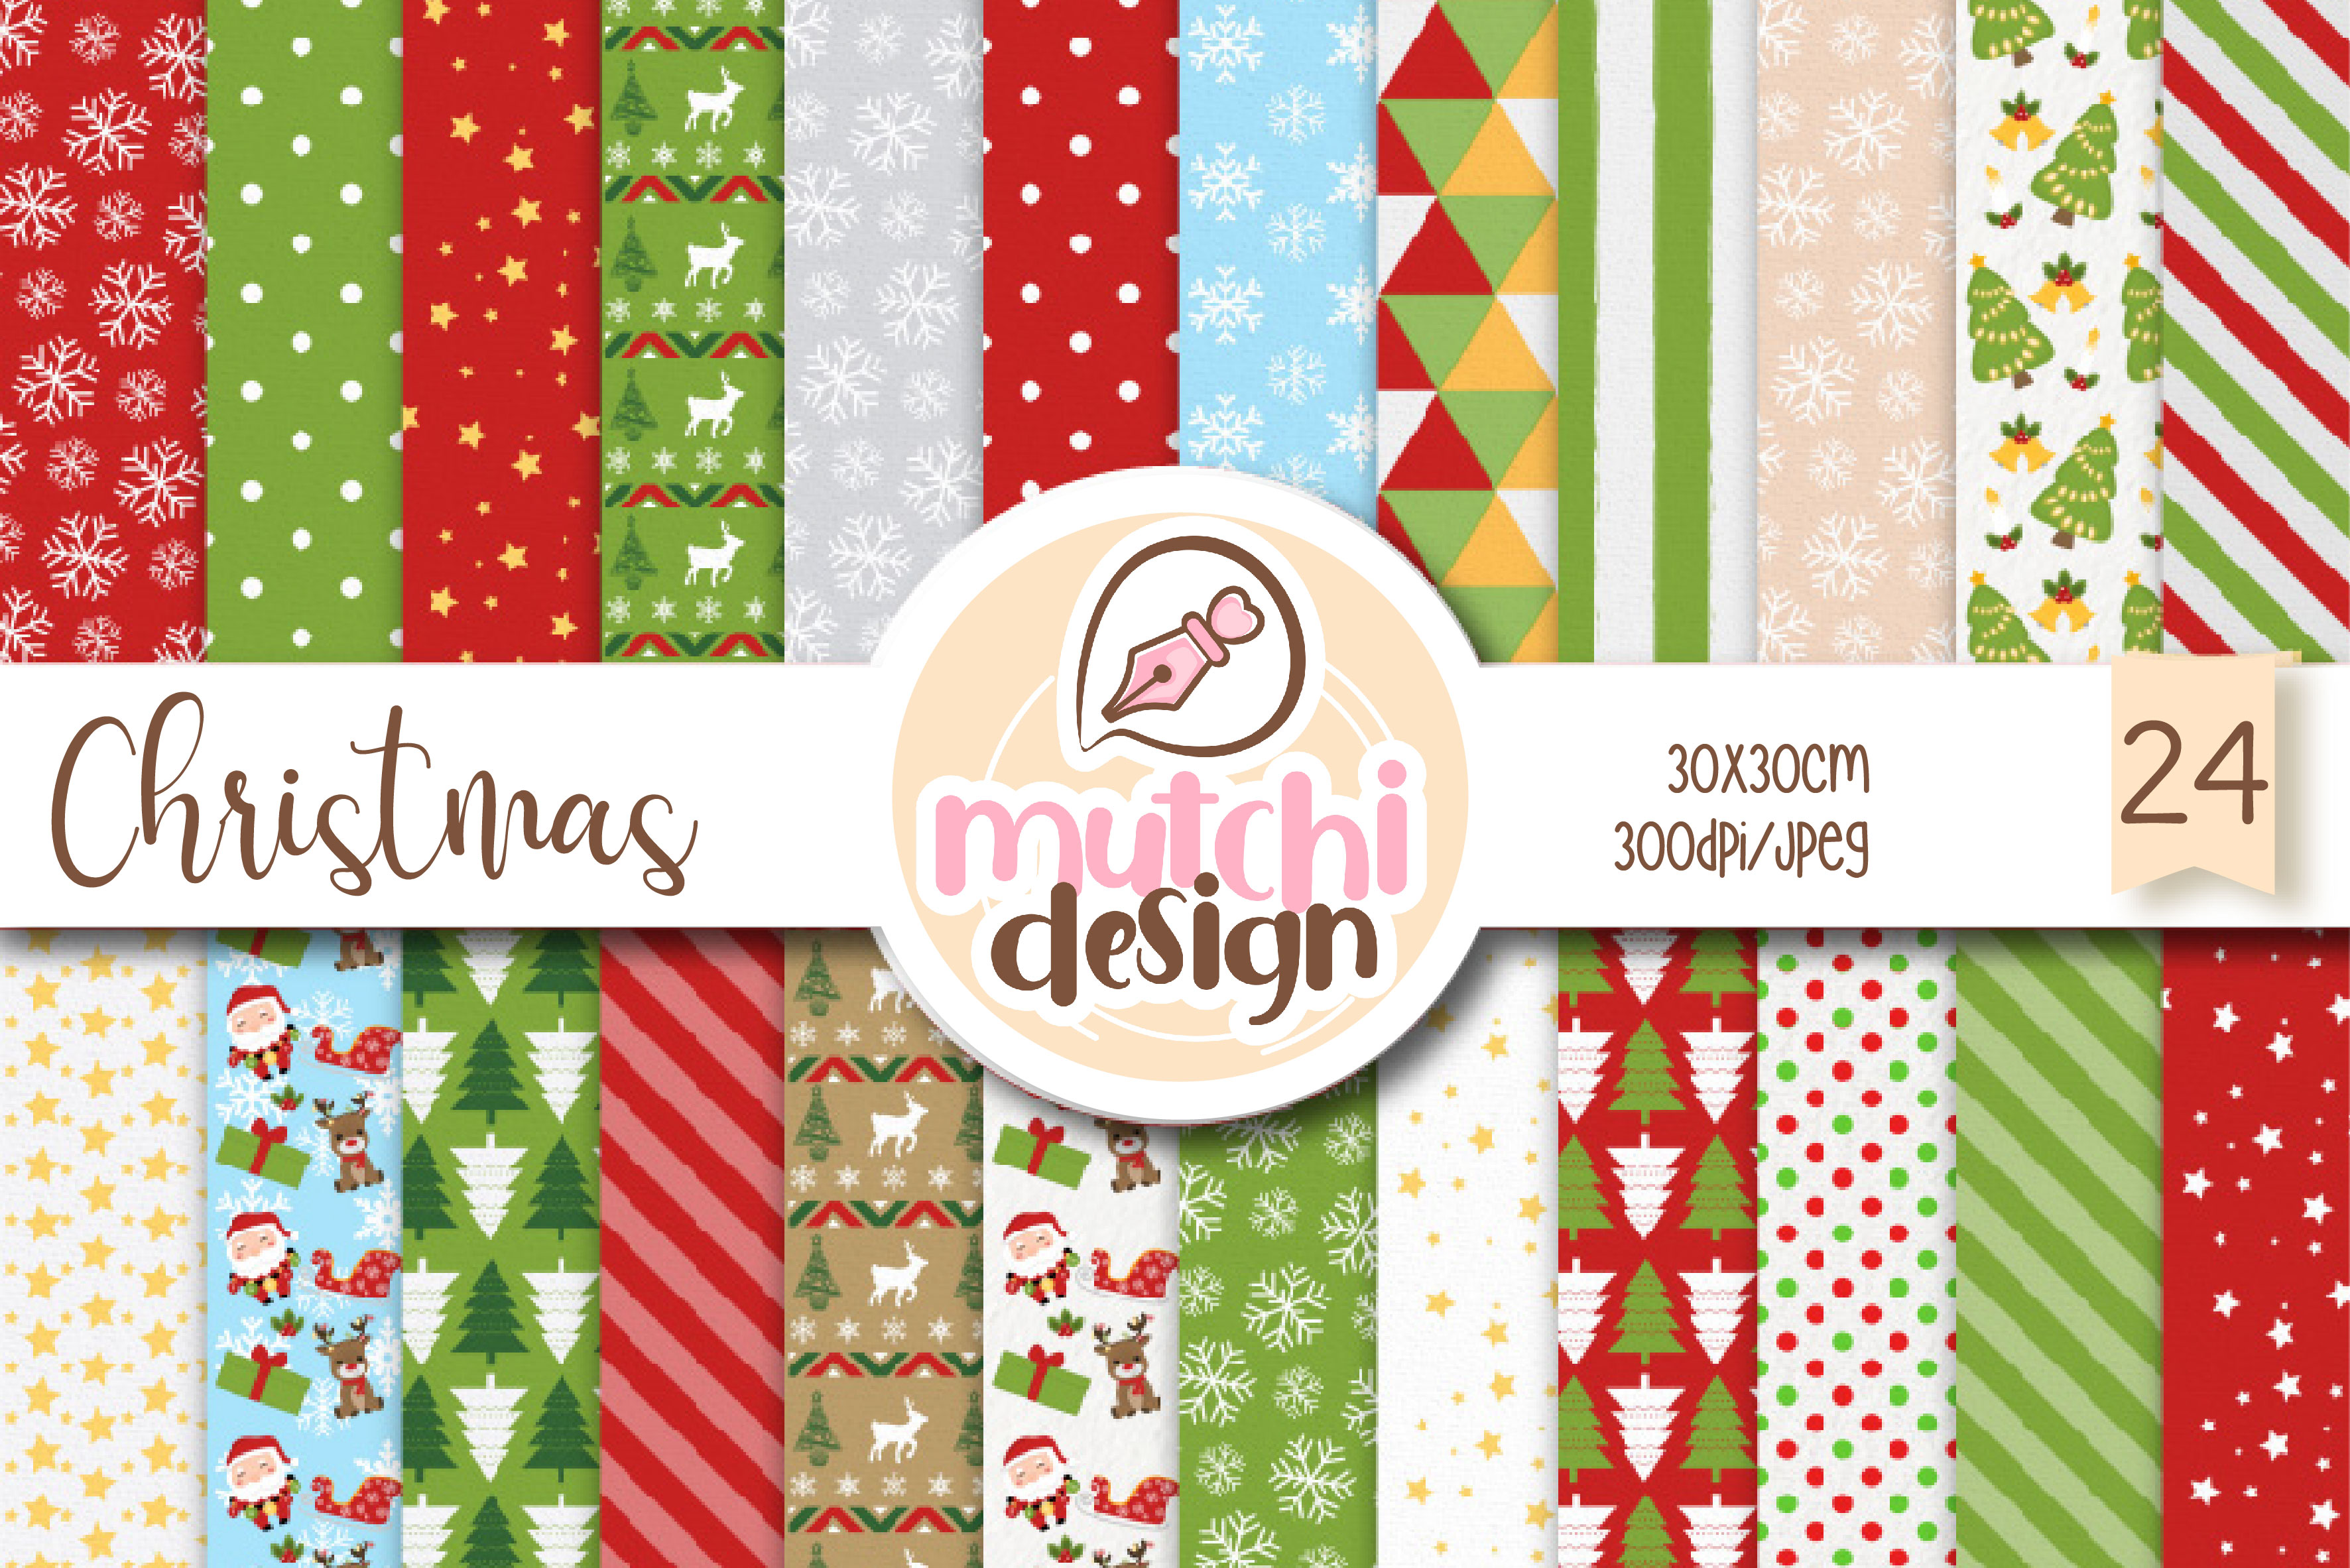 Download Free Christmas Cute Digital Papers Graphic By Mutchi Design for Cricut Explore, Silhouette and other cutting machines.